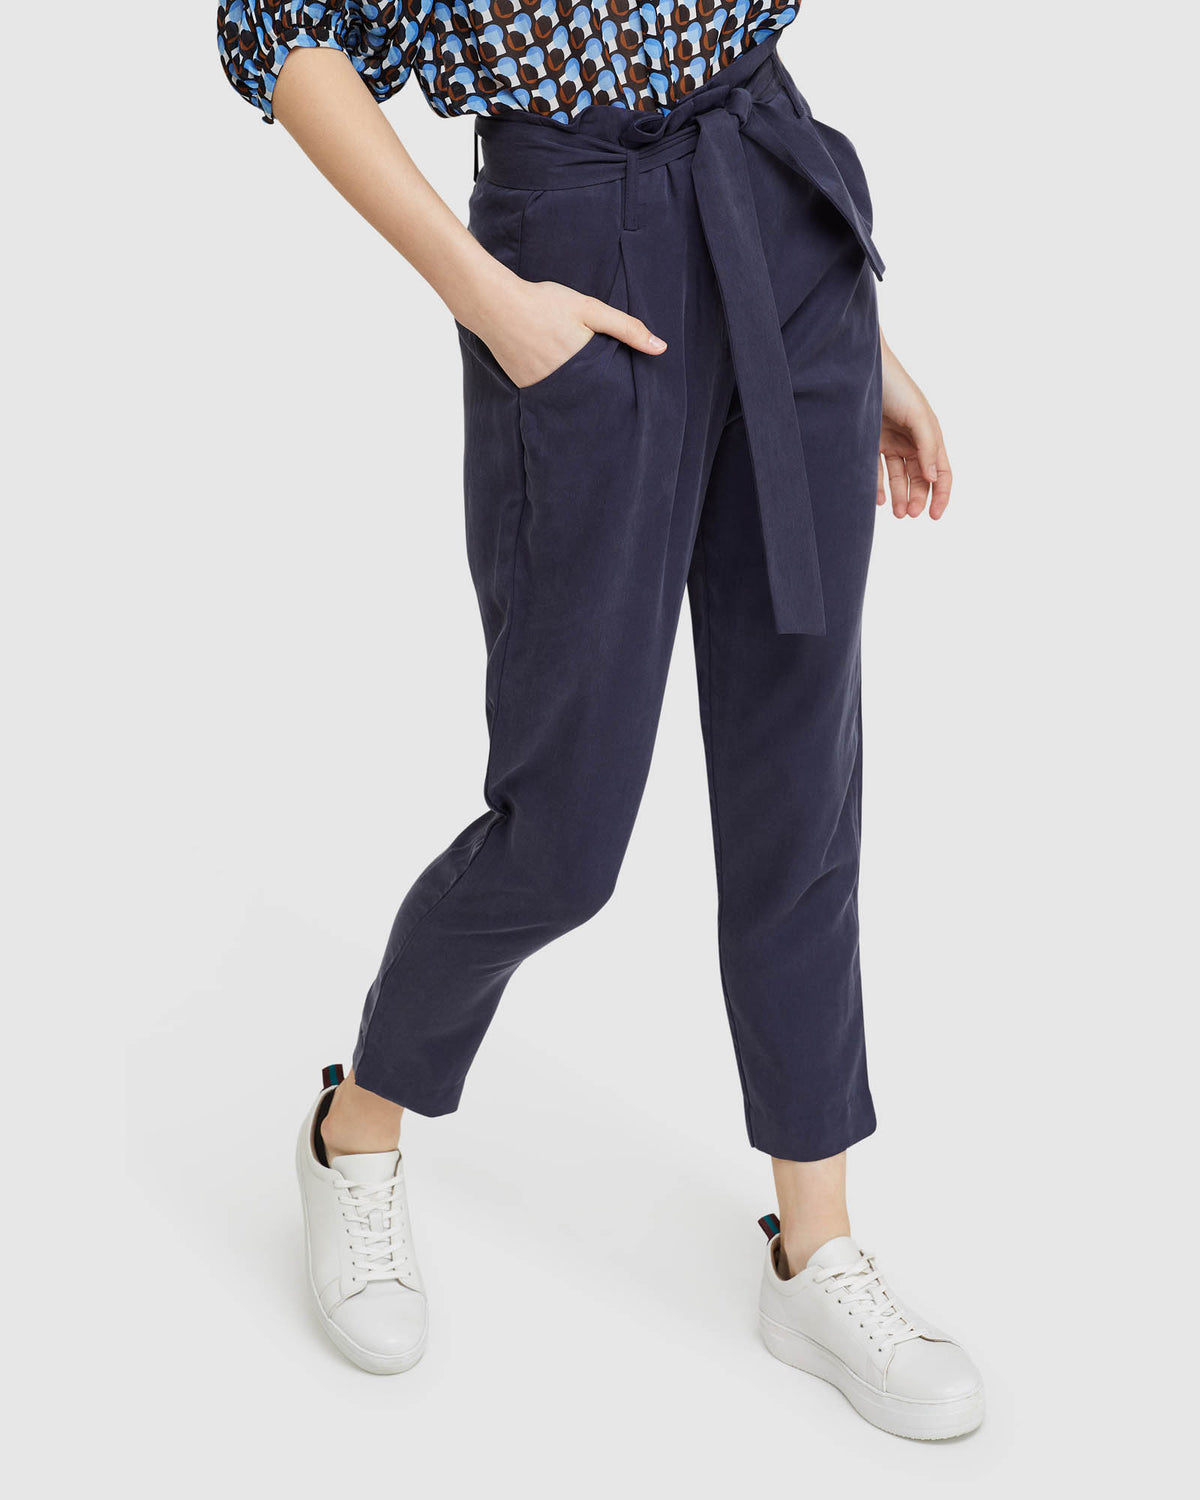 SLOANE VISCOSE AND LINEN PANTS NAVY